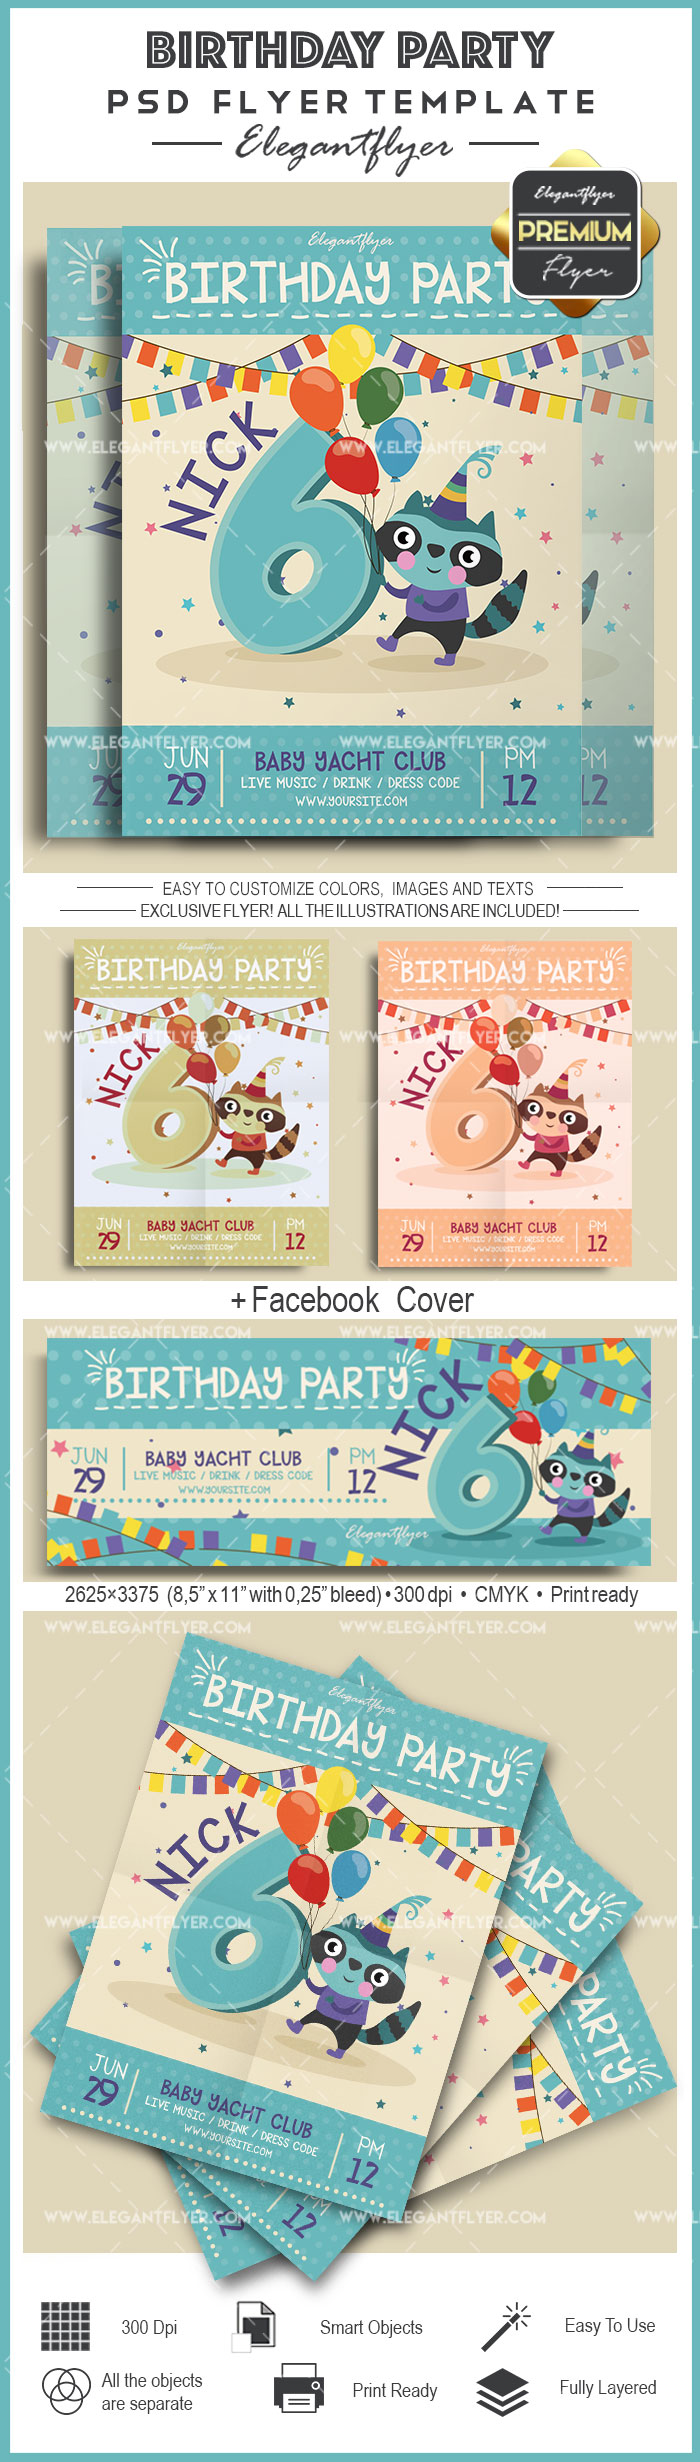 Raccoon in Birthday Party Template